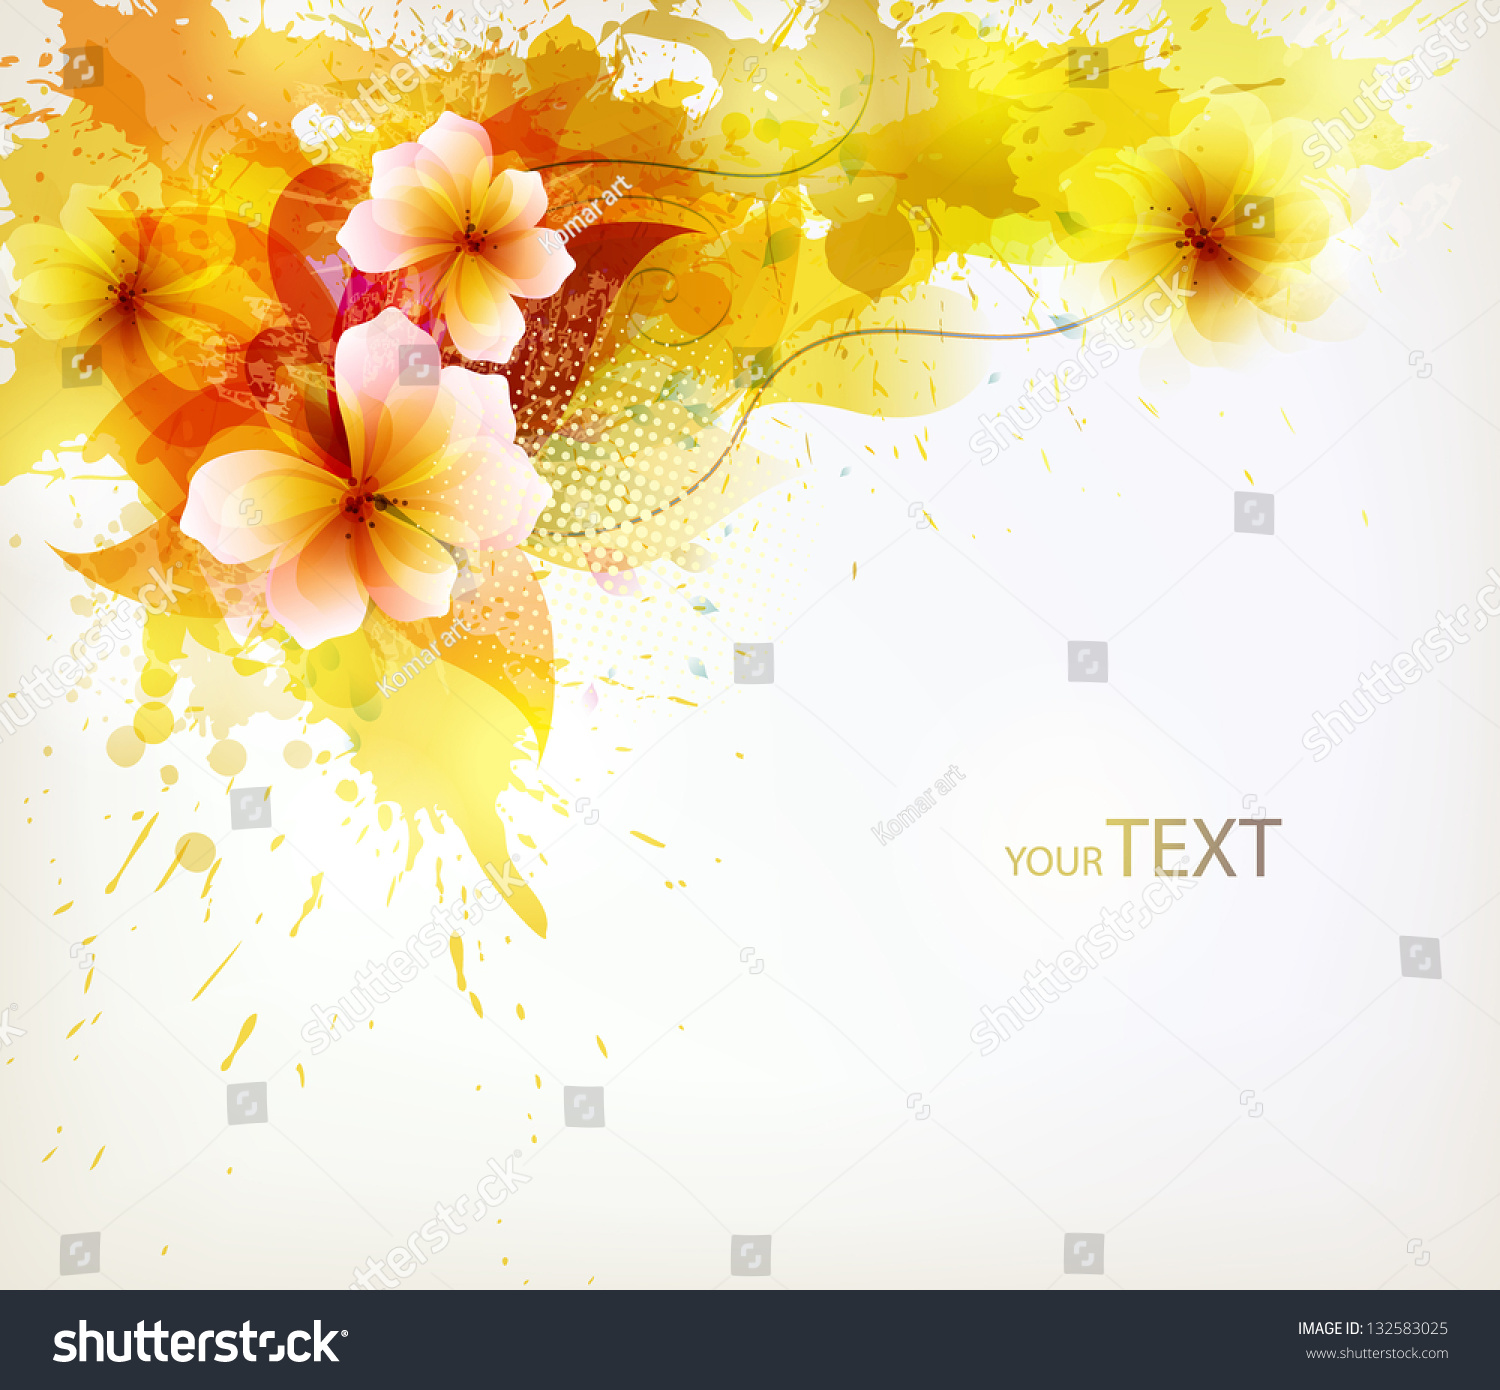 Colorful yellow flower on splattered background stock vector colorful yellow flower on splattered background vector design mightylinksfo